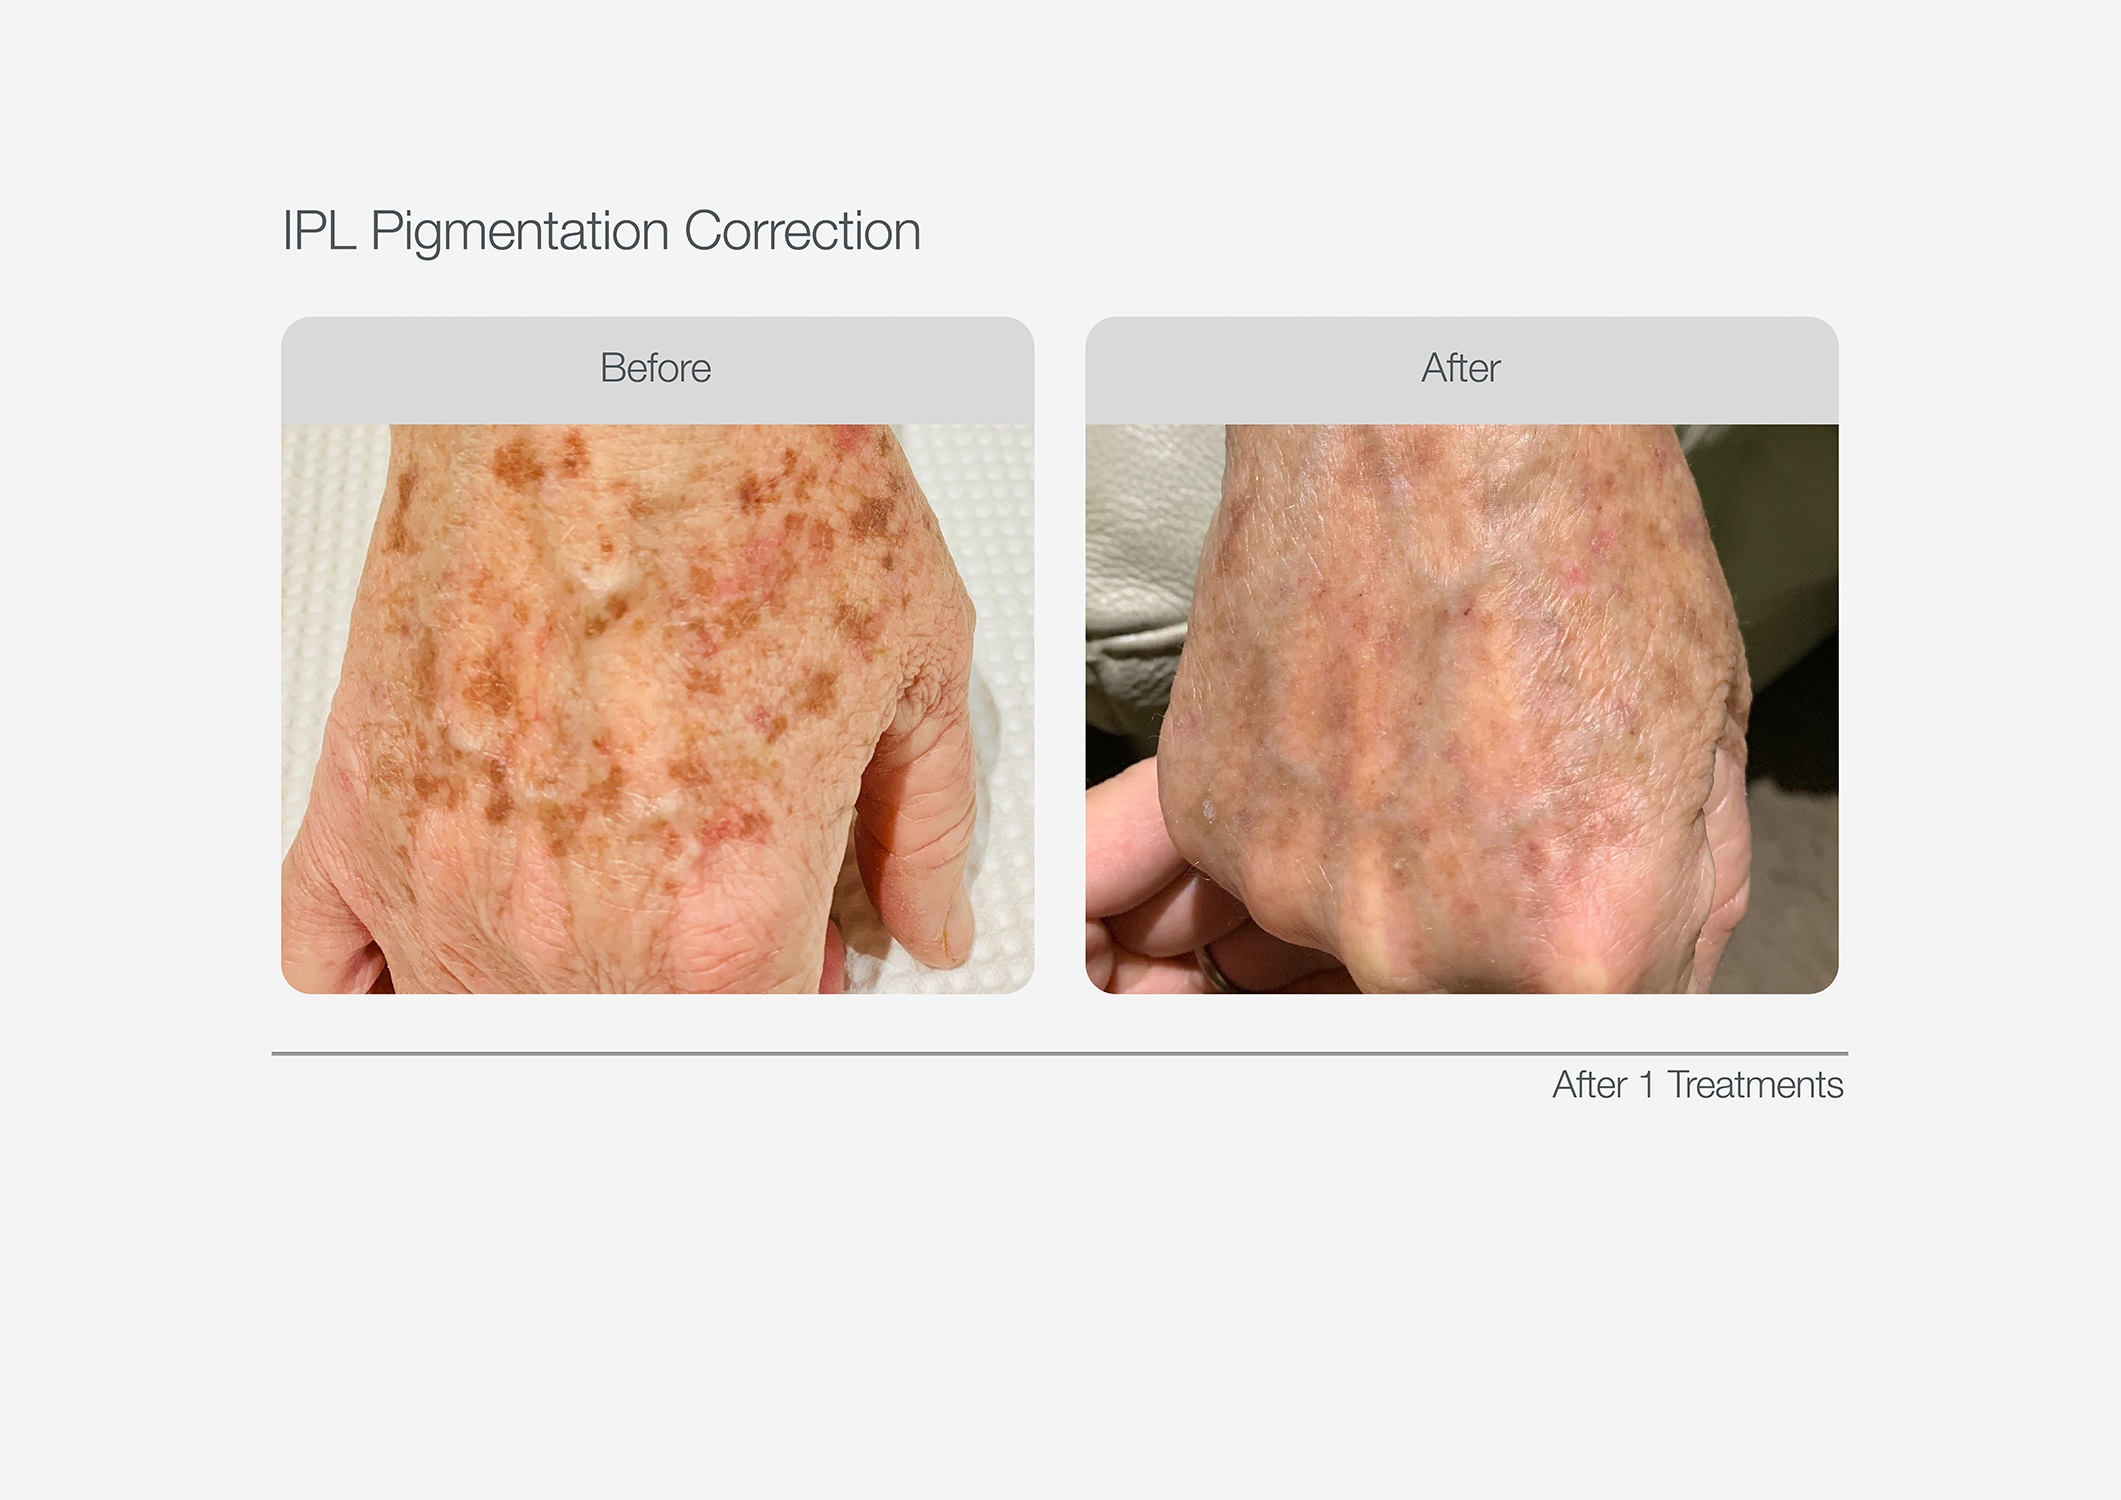 IPL-Pigmentation-Correction-Before-After-10